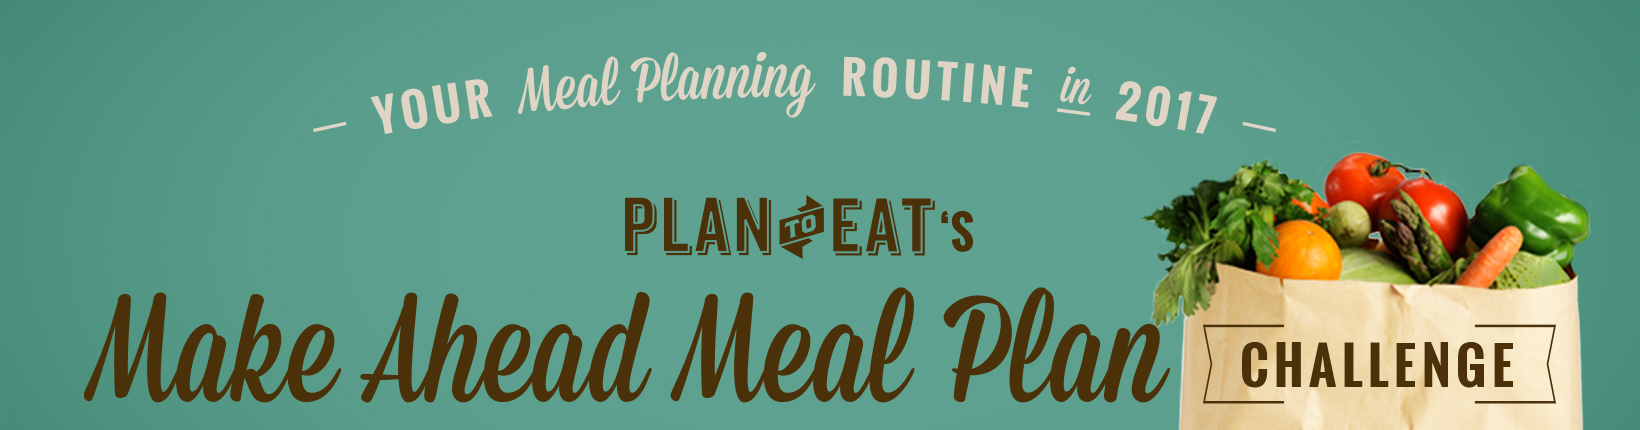 Plan to Eat 2017 Make Ahead Meal Plan Challenge